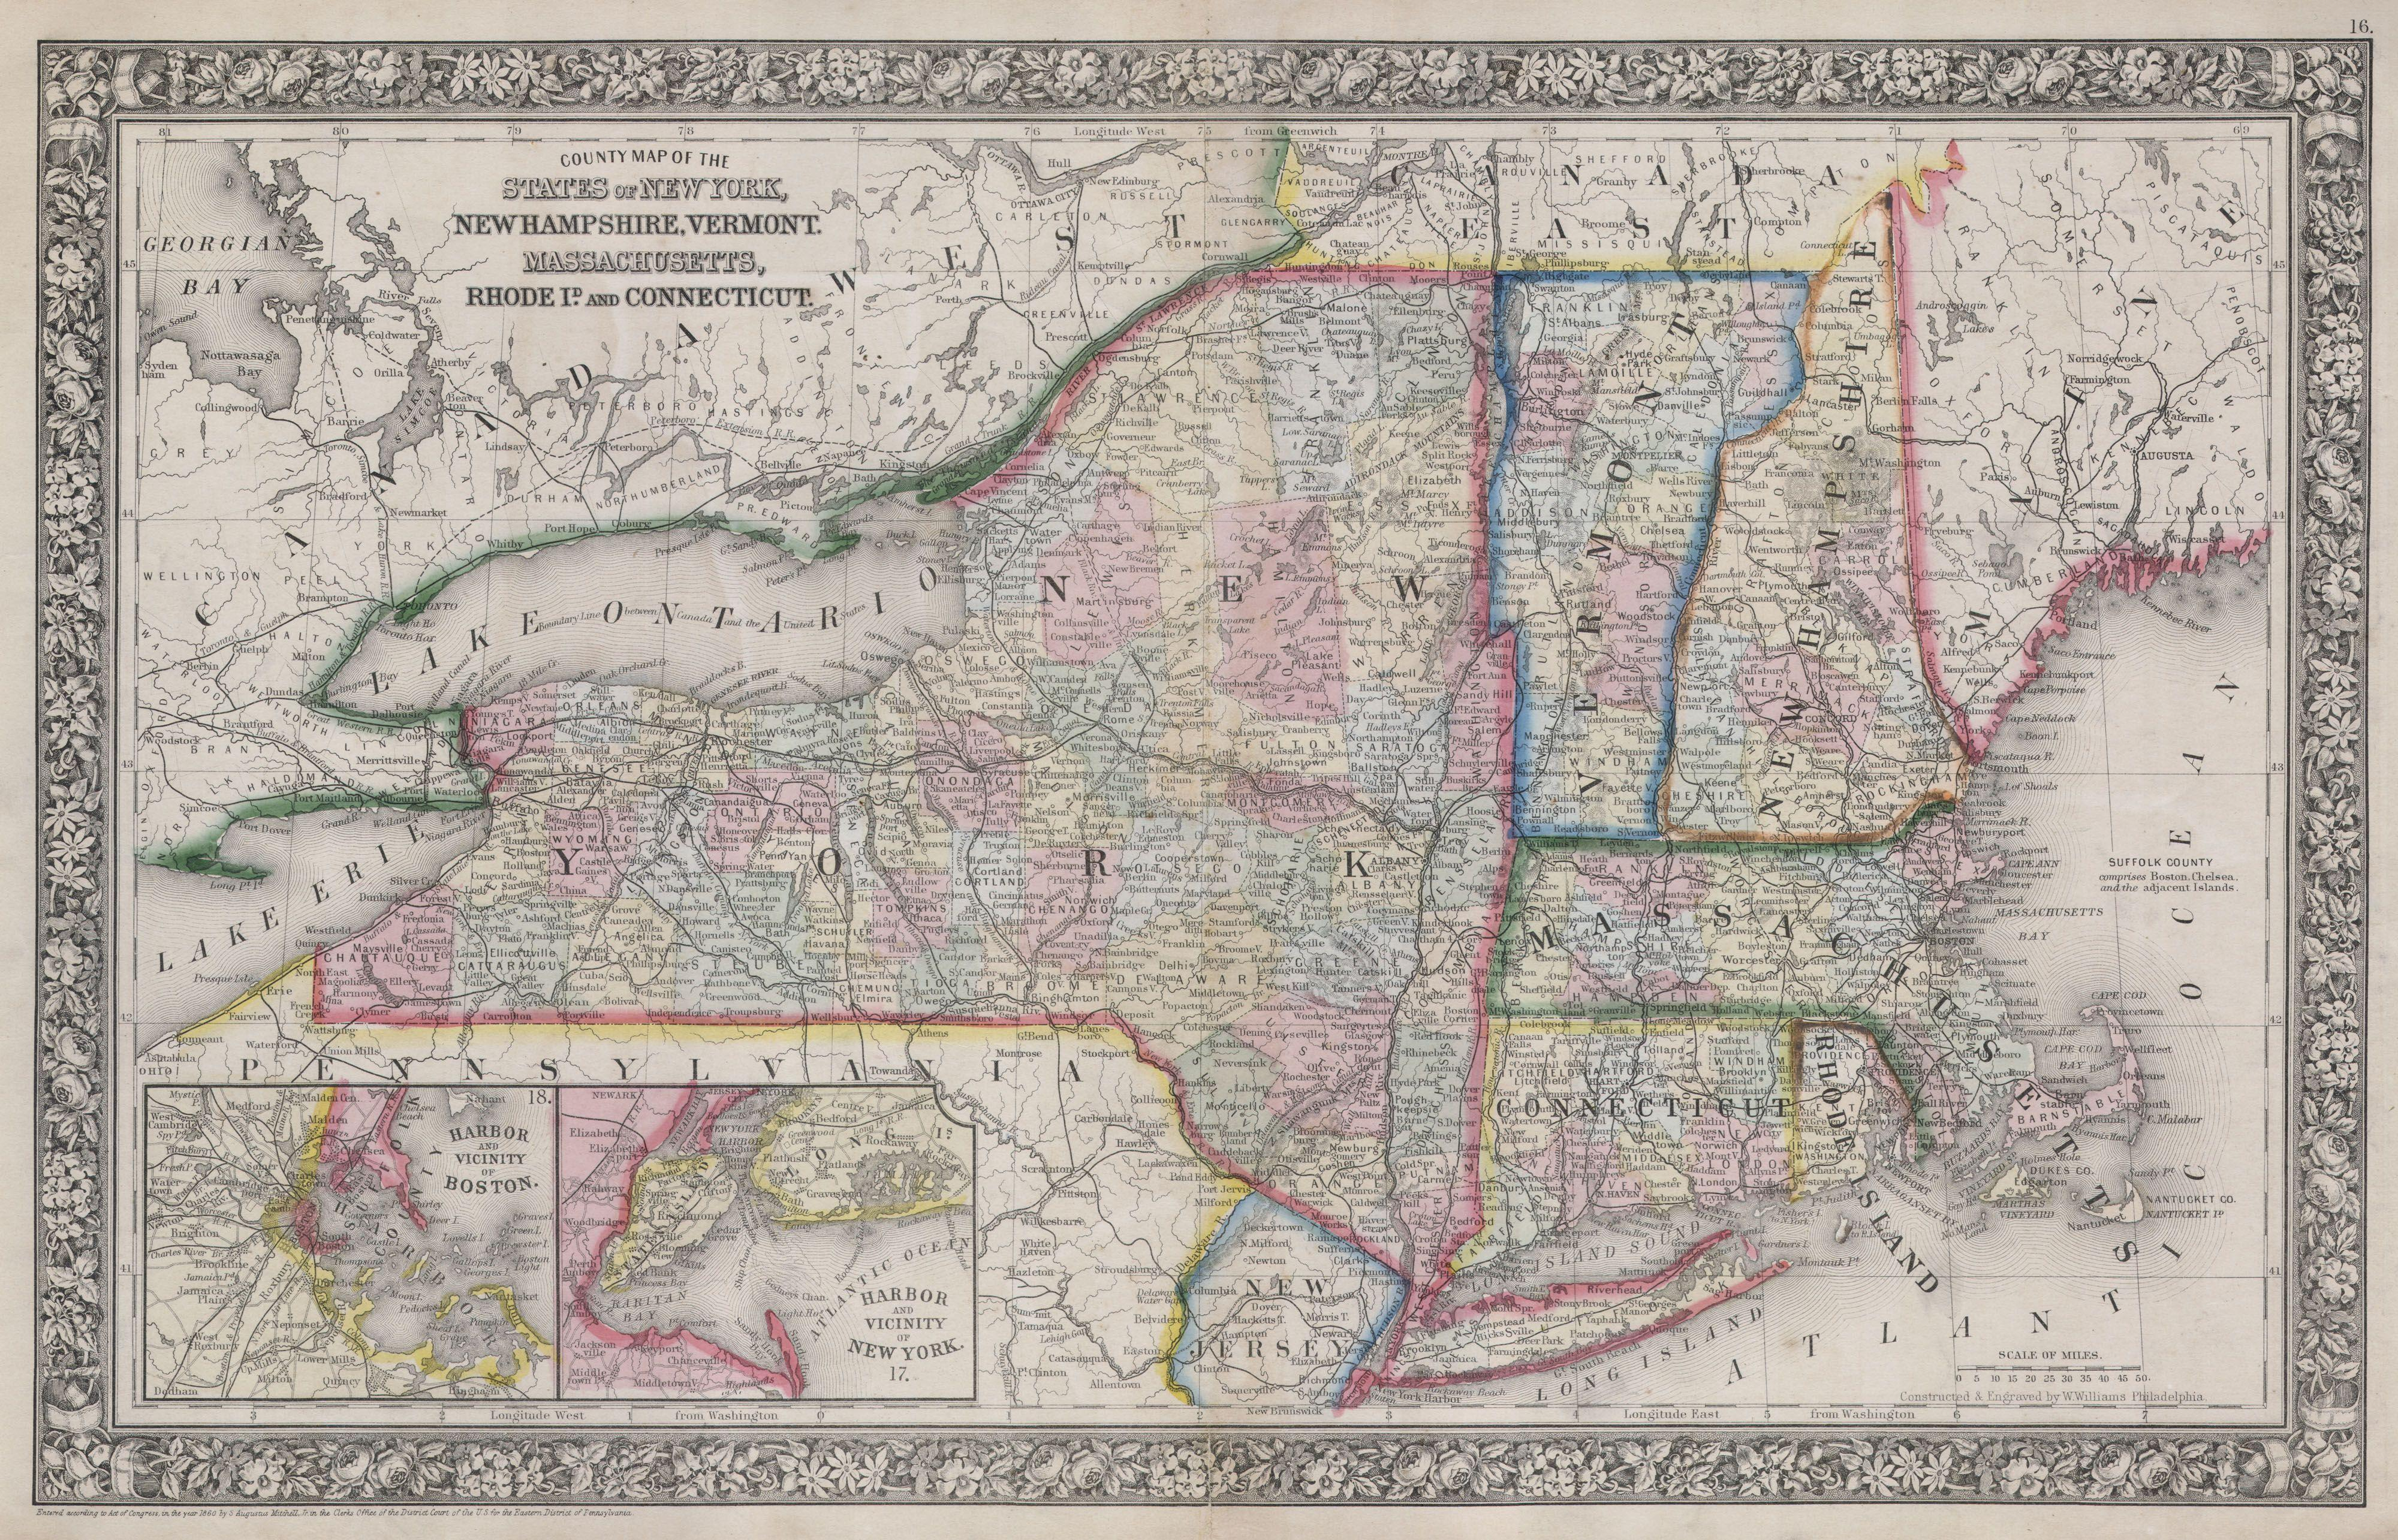 File:1864 Mitchell Map of New York, Massachusetts, Connecticut